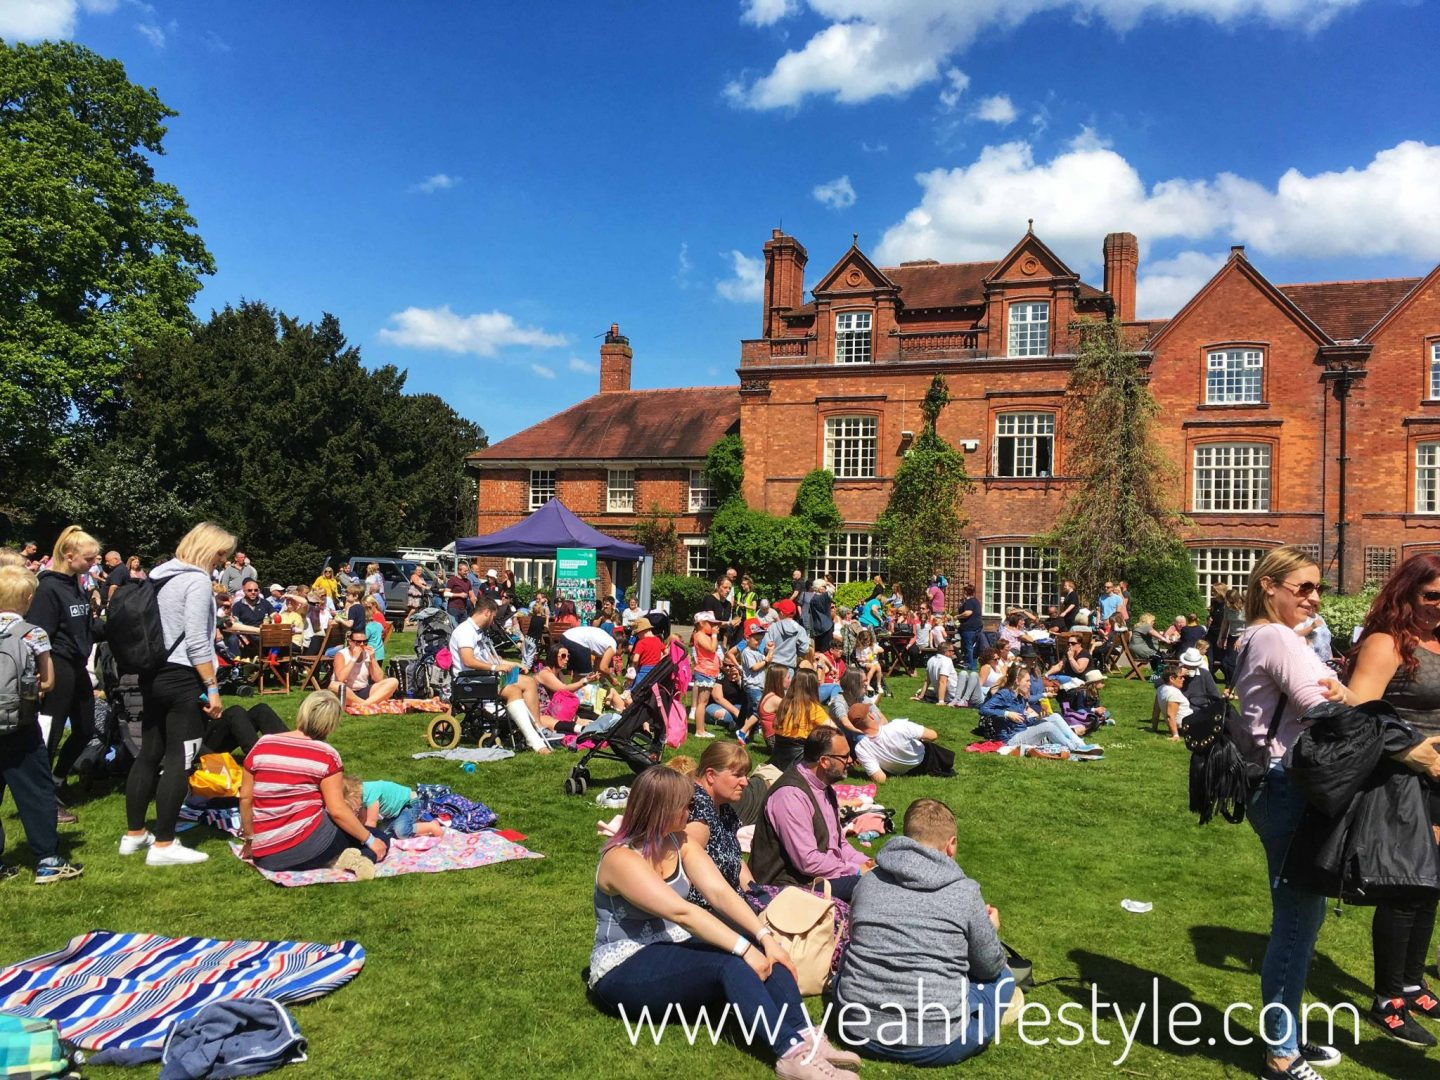 Day Out at Reaseheath Family Festival at Reaseheath College, Nantwich *